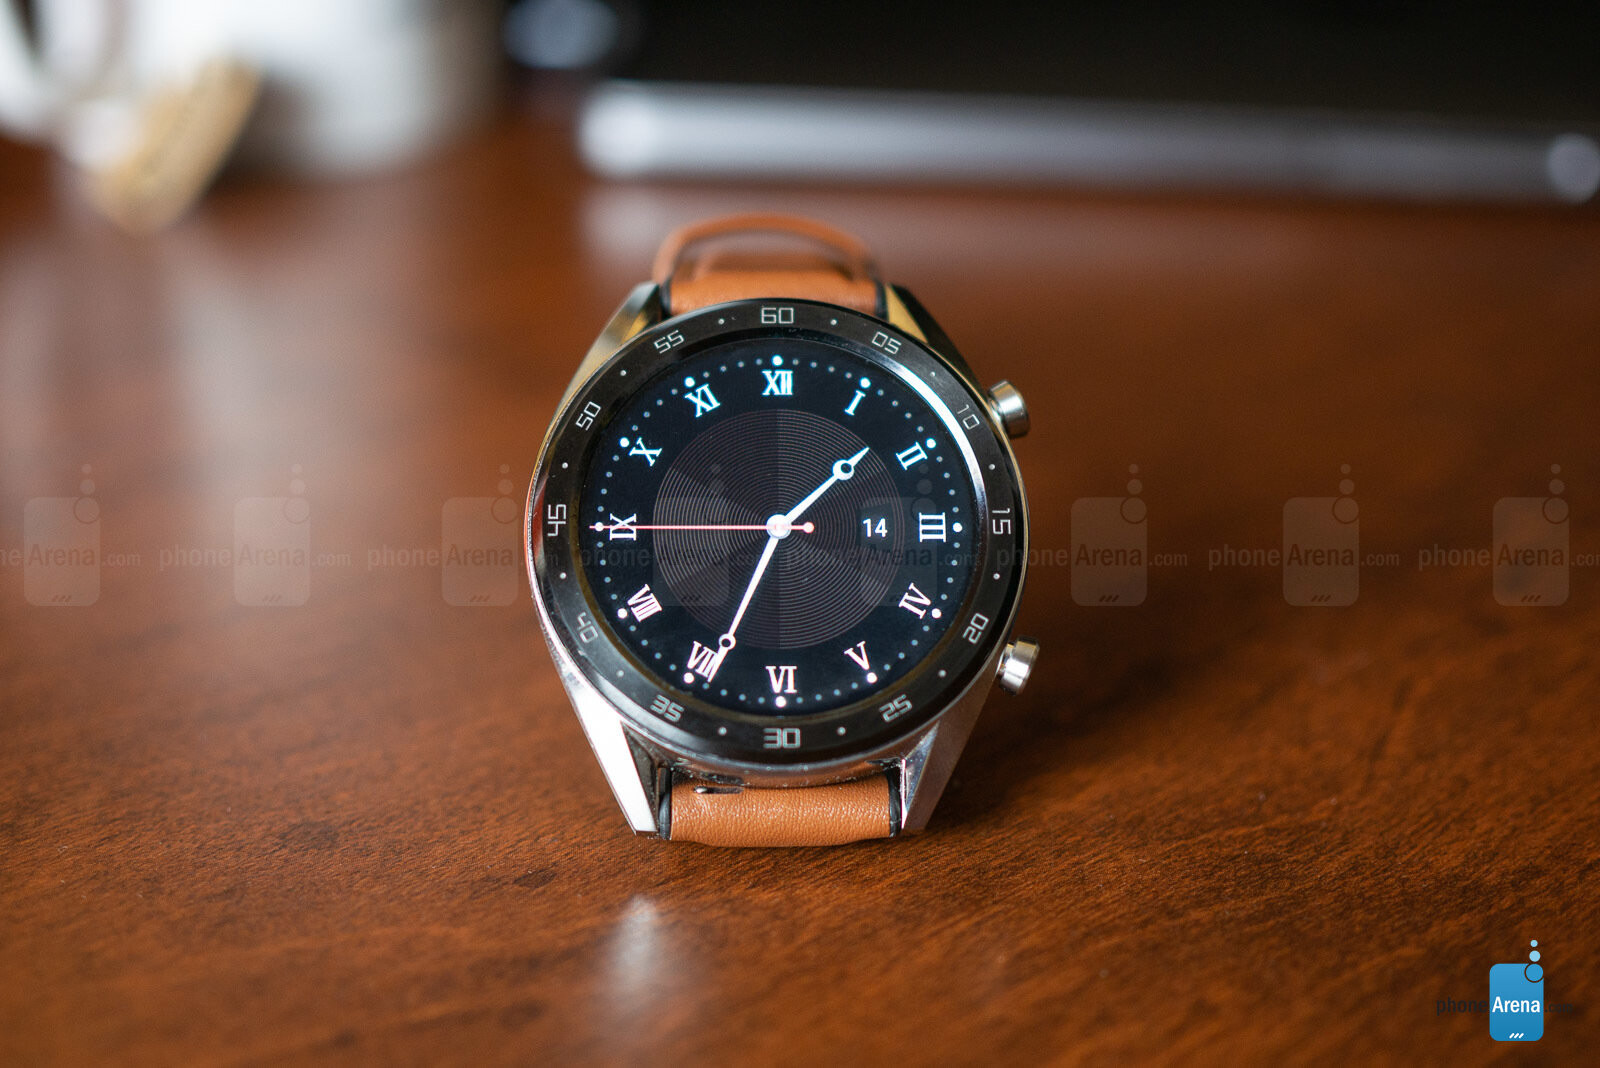 Best smartwatches to buy right now (2019) - PhoneArena